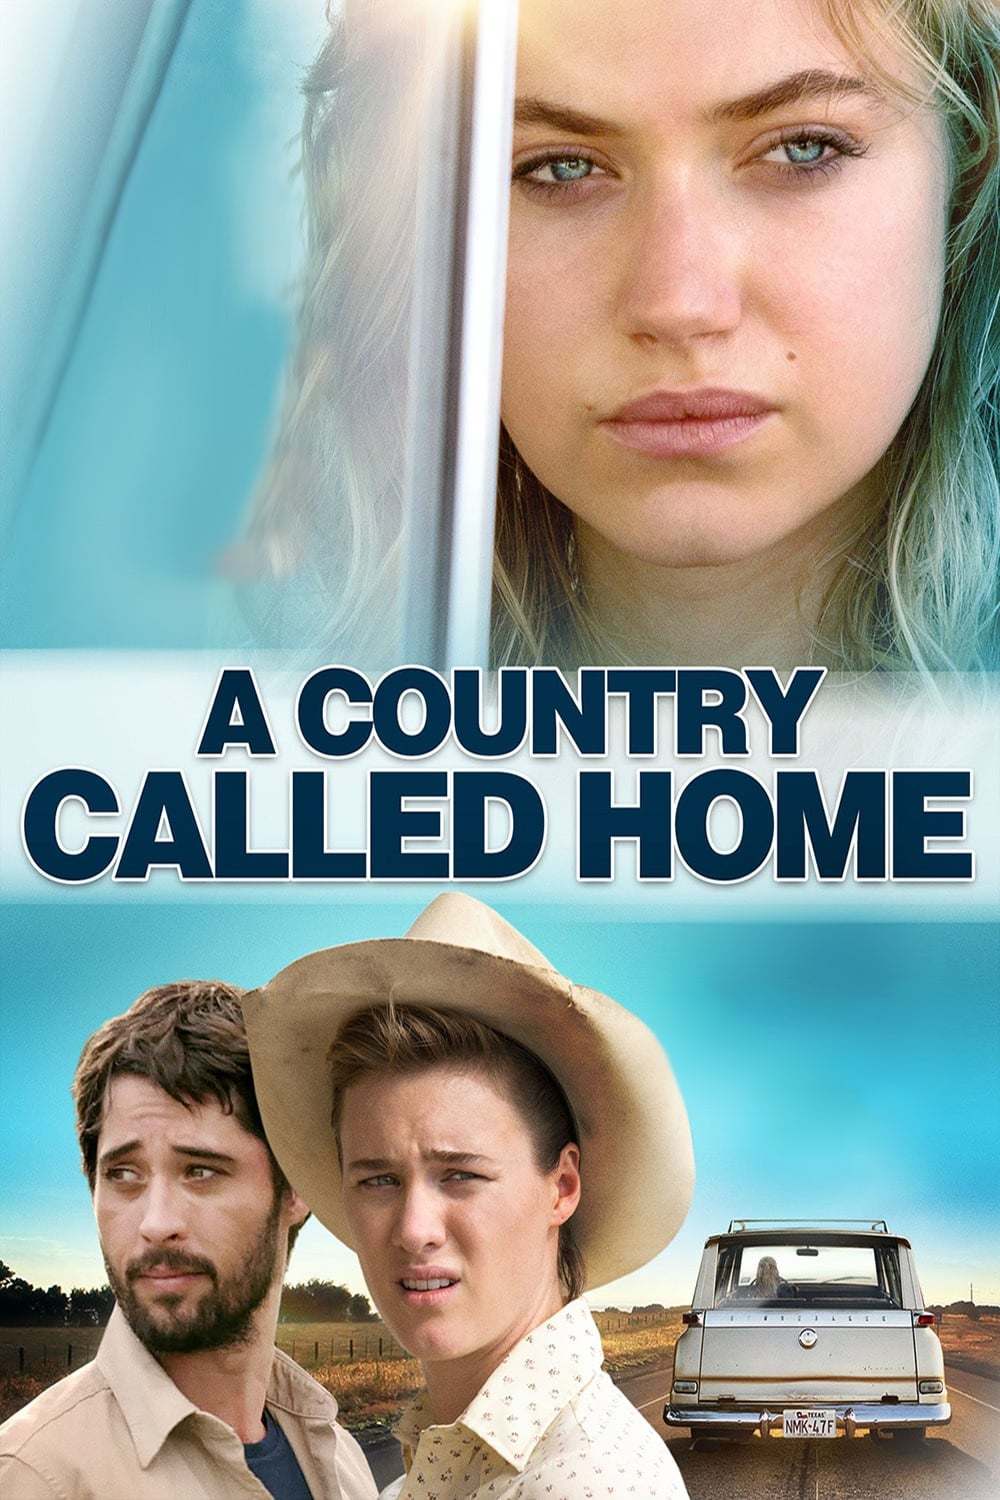 A Country Called Home